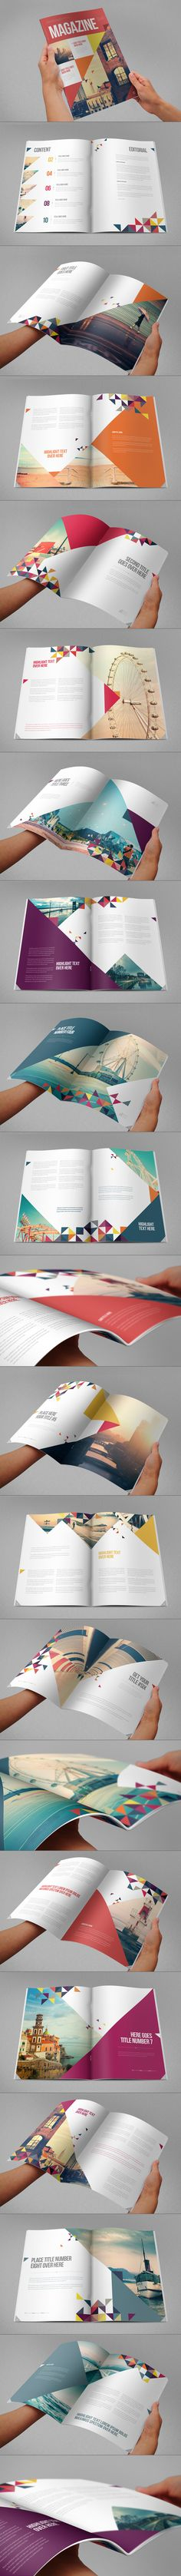 Modern Triangles Magazine. Download here: http://graphicriver.net/item/modern-triangles-magazine/7083597?ref=abradesign #design #magazine #editorial